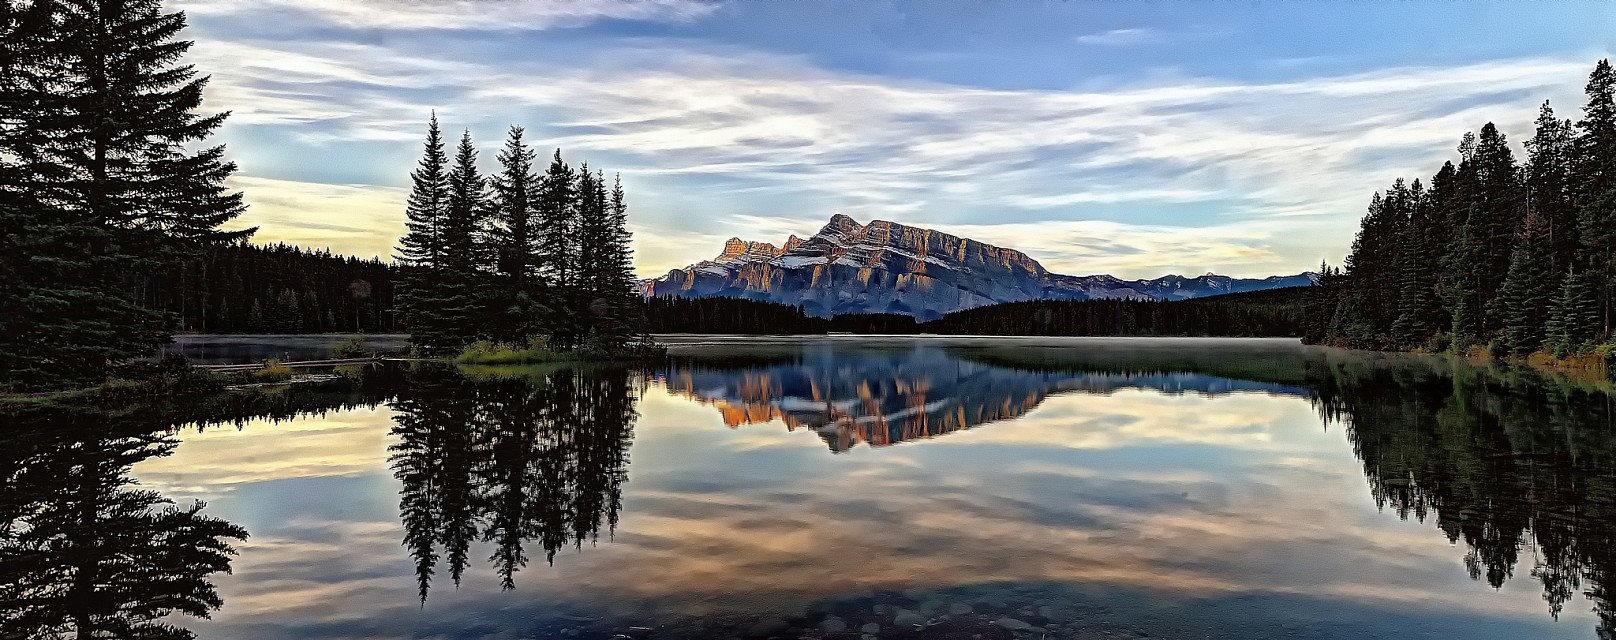 Sunrise on Mount Rundle from Two Jack Lake - Two Jack Lake